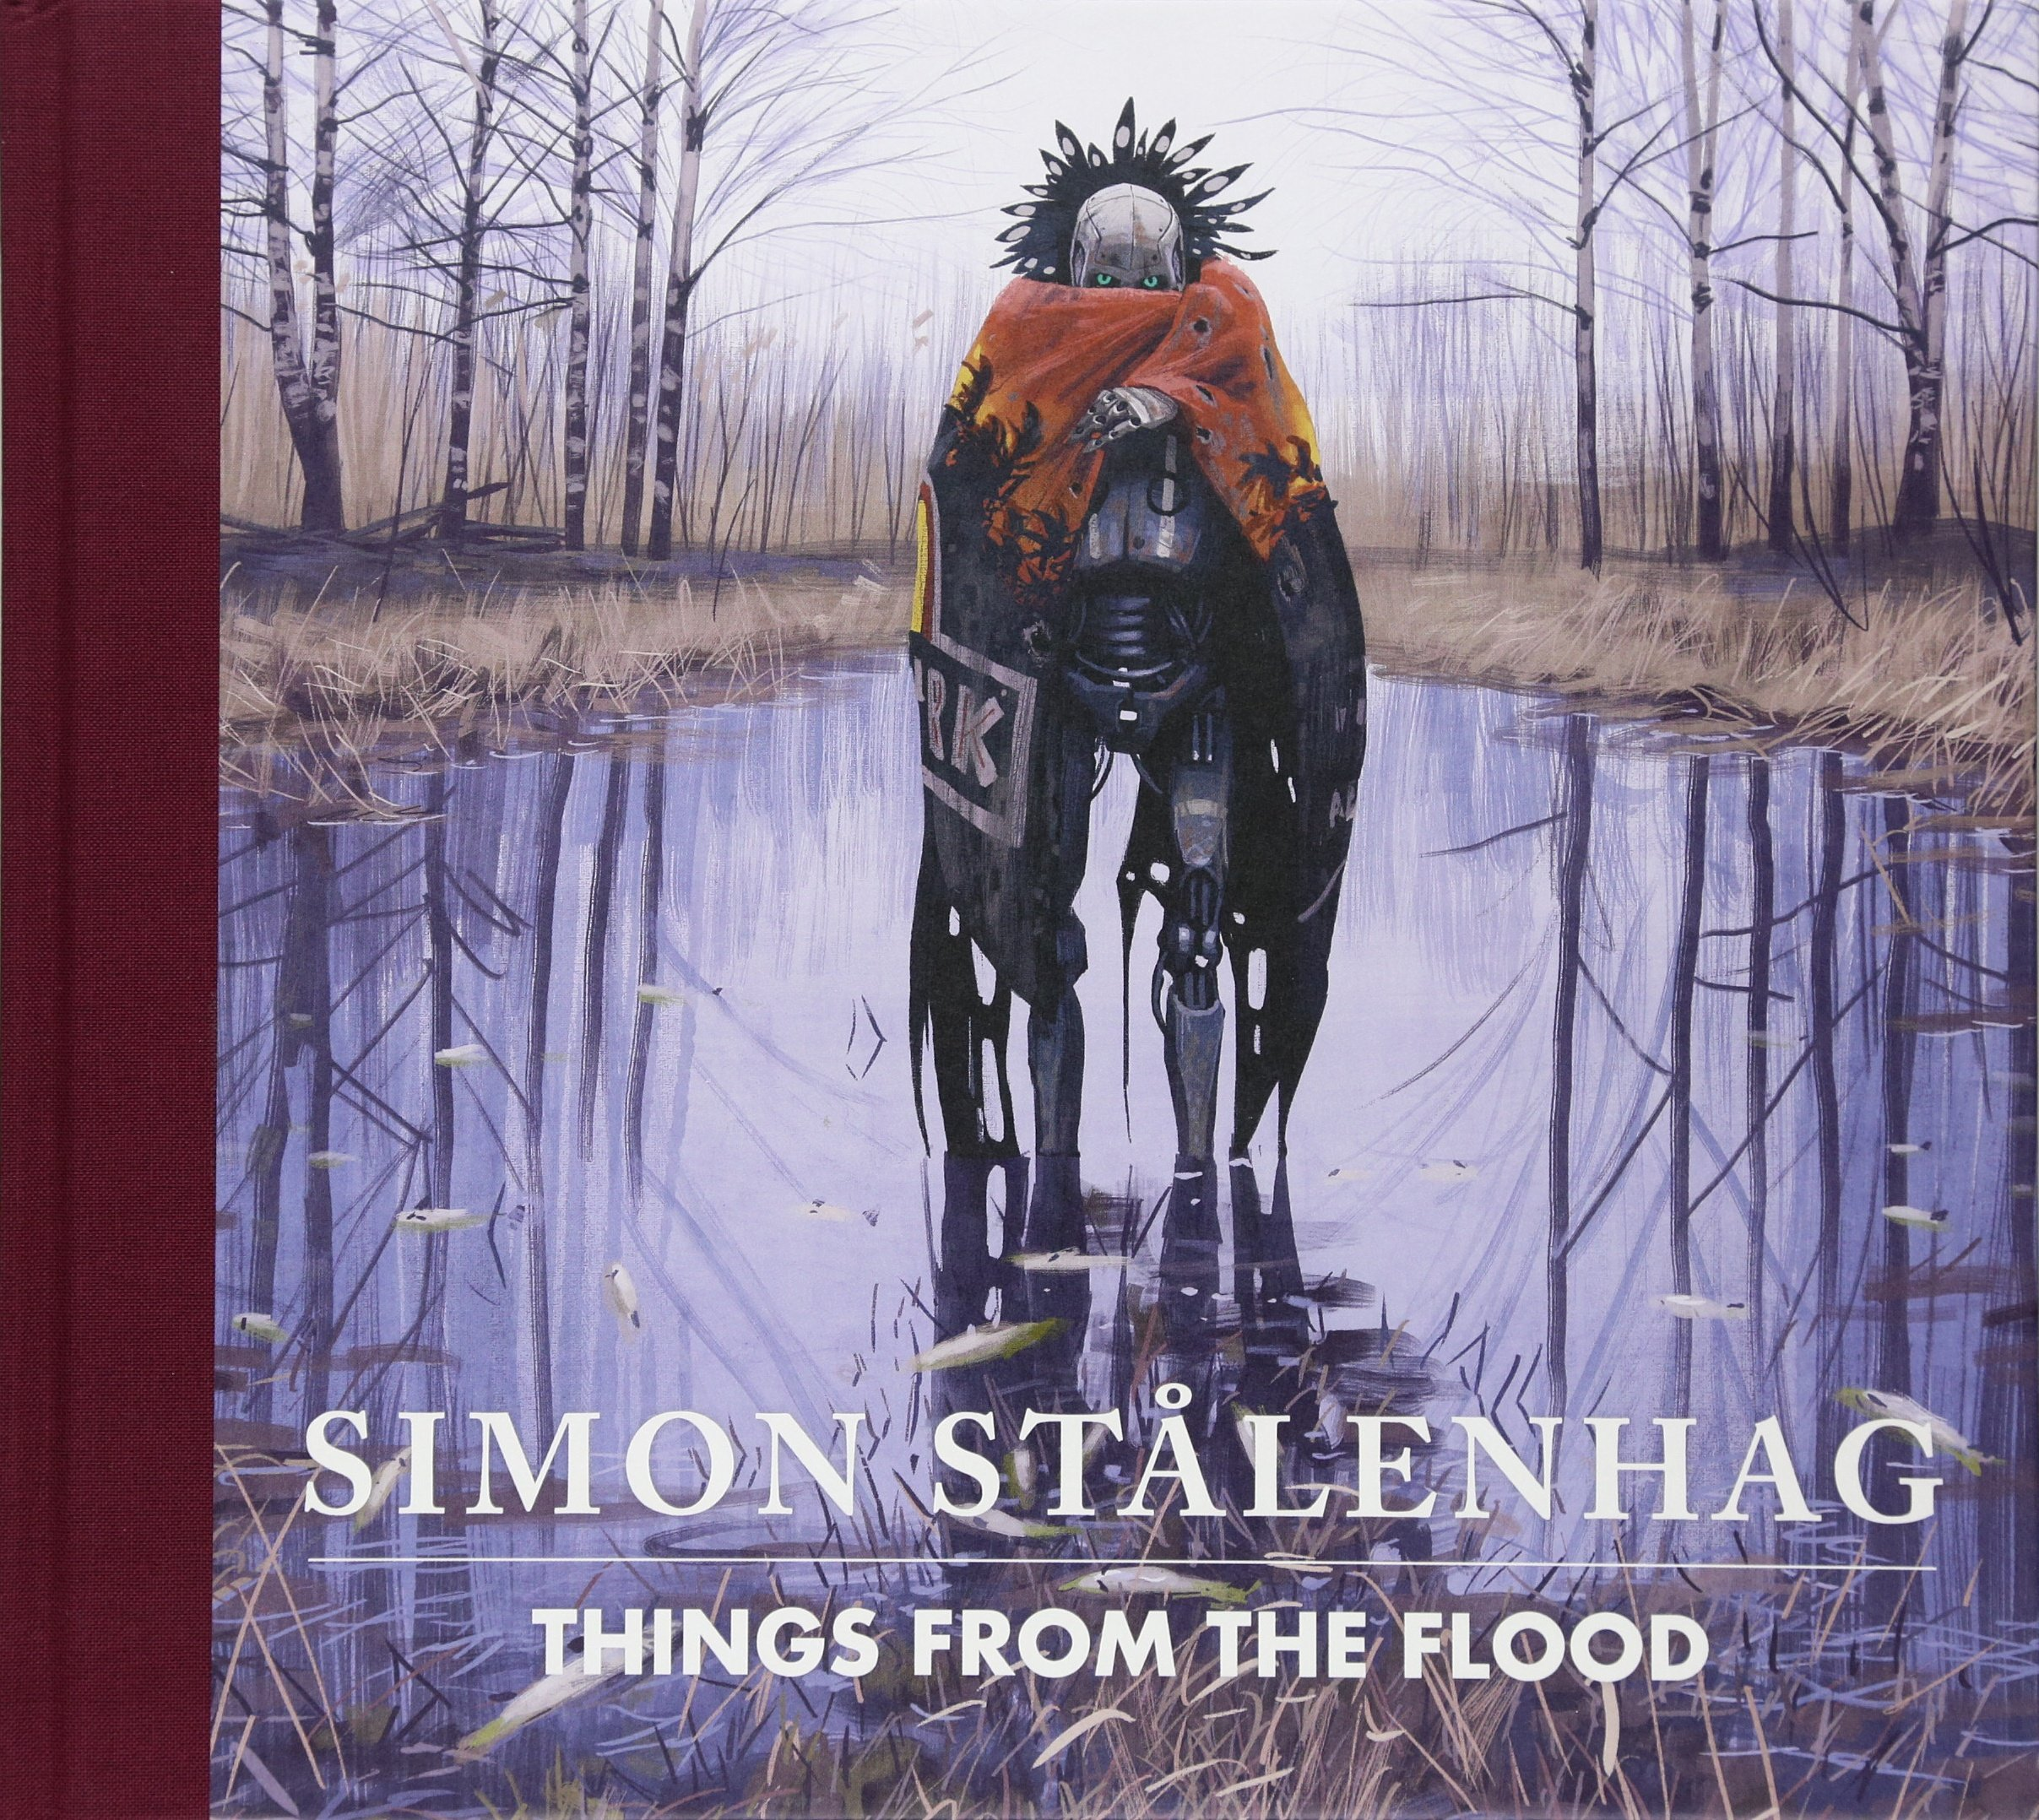 Things from the Flood by Stalenhag Simon